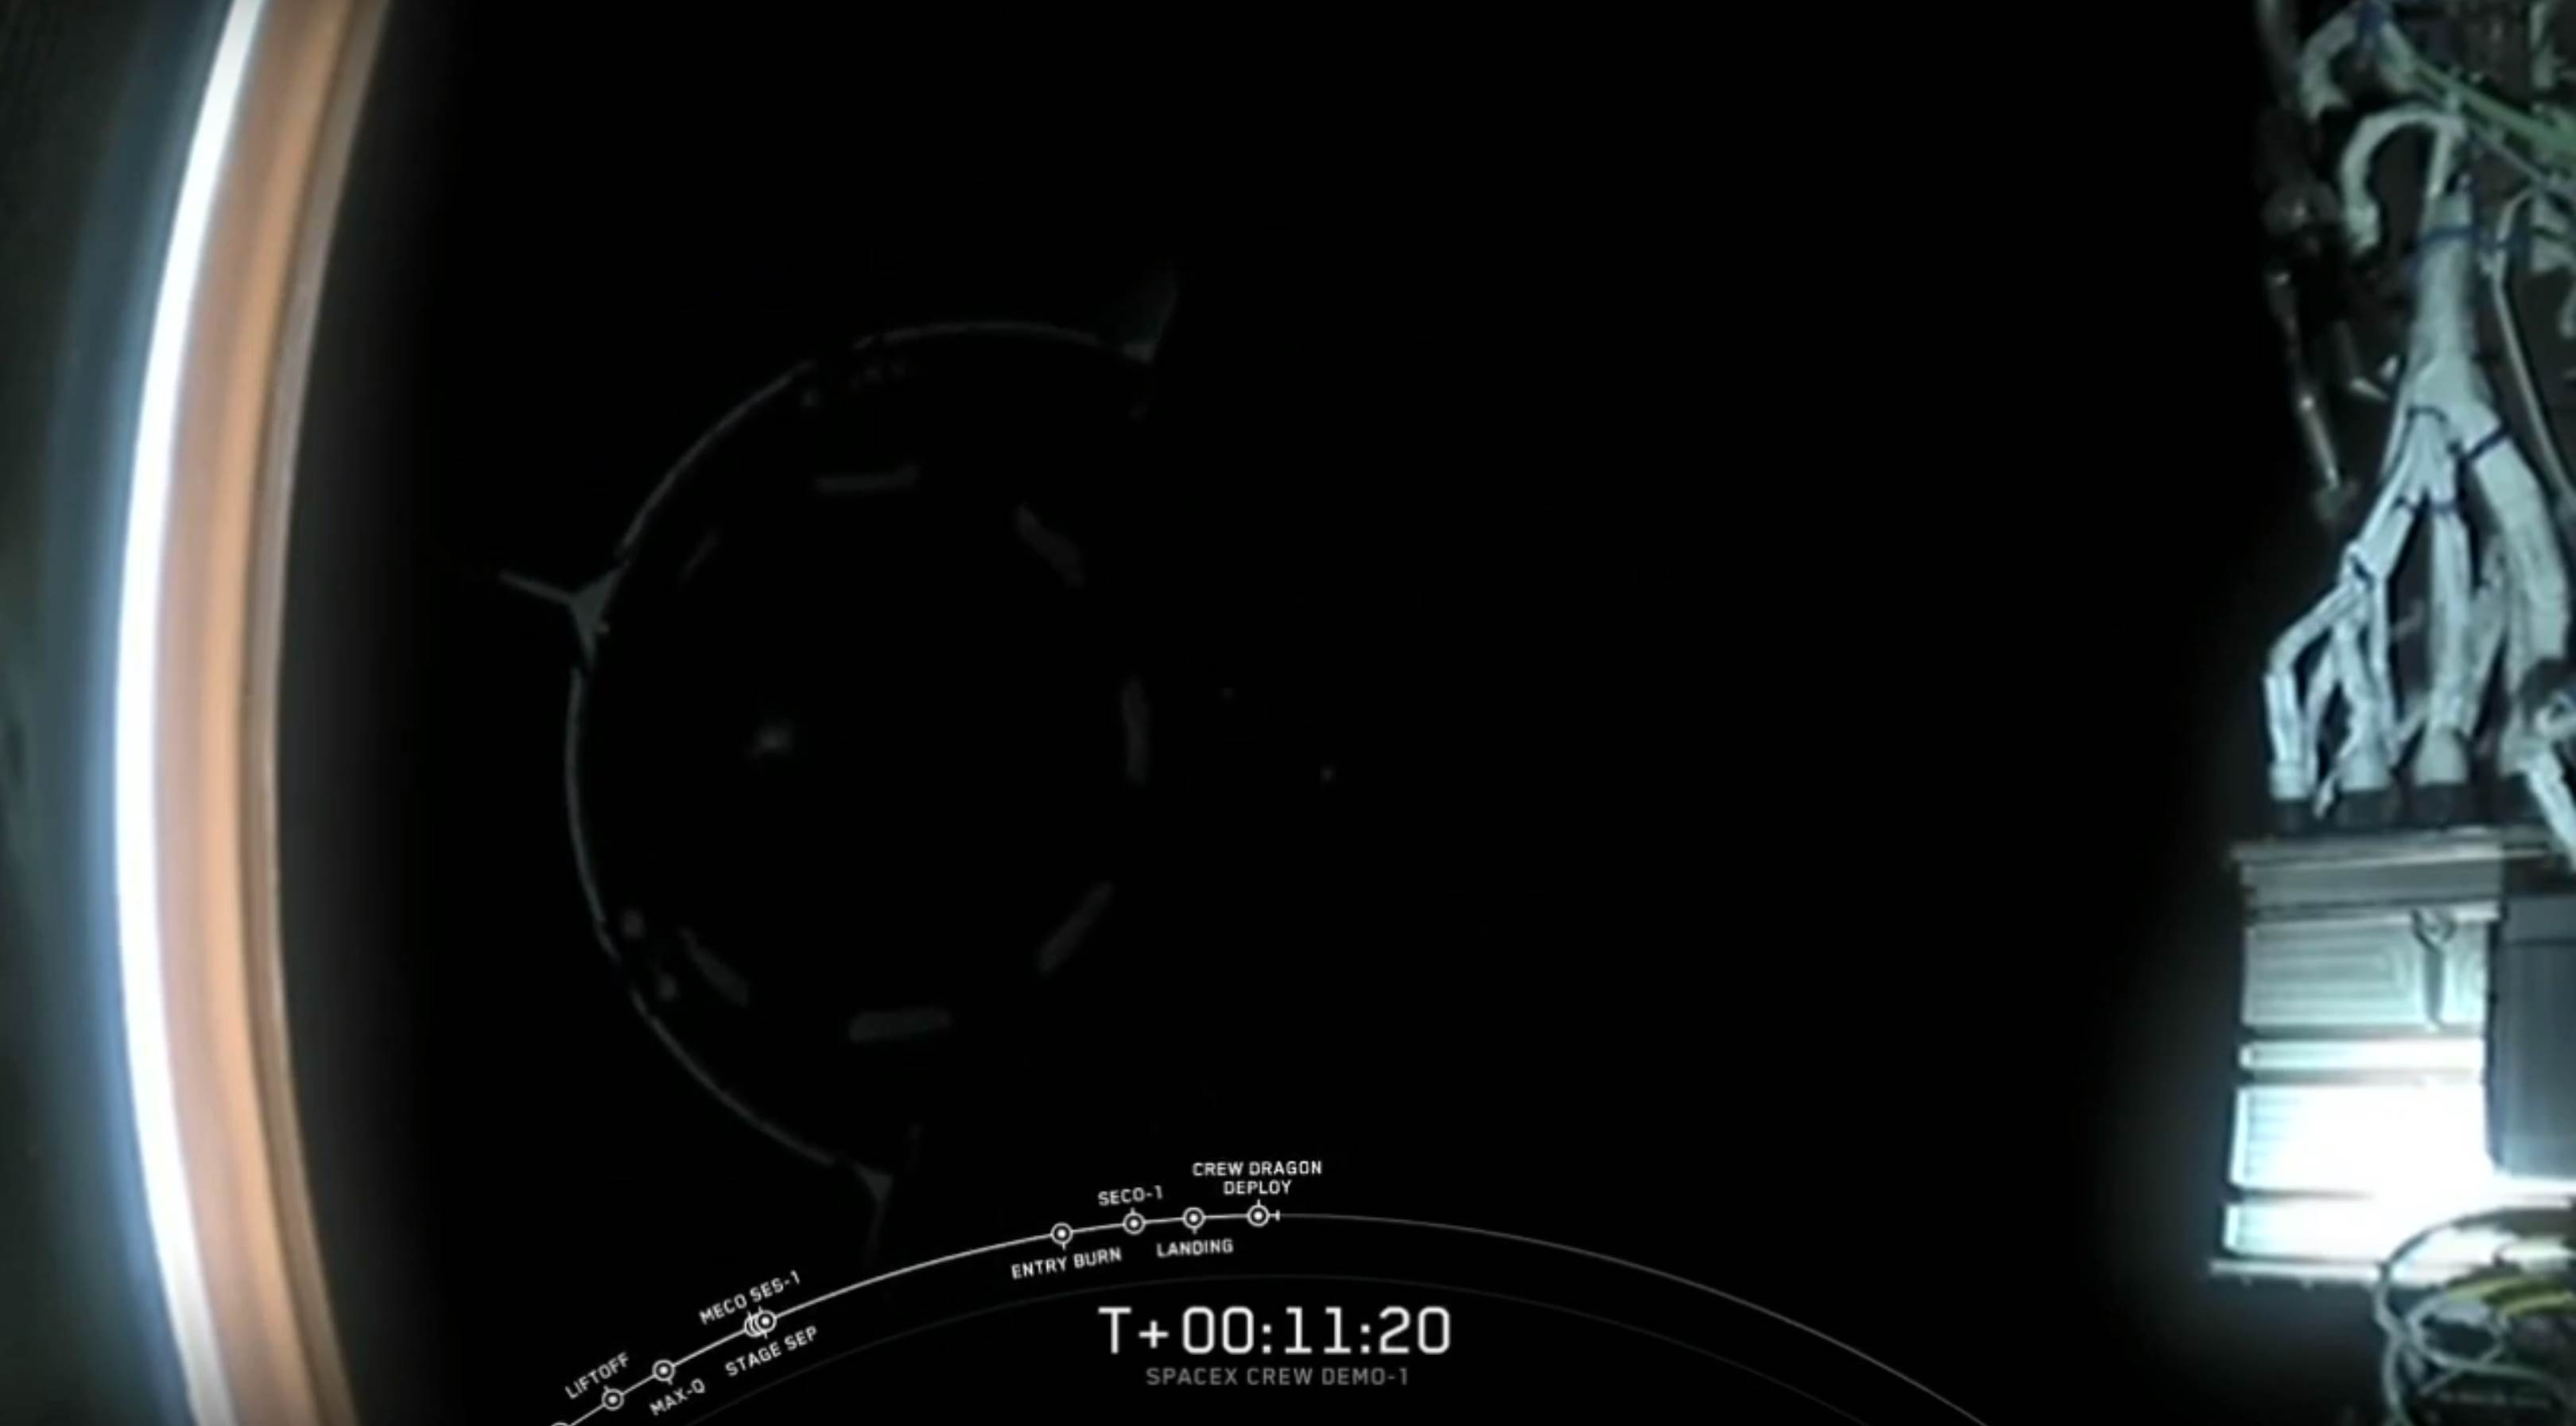 DM-1 Crew Dragon Falcon 9 B1051 deploy (SpaceX)